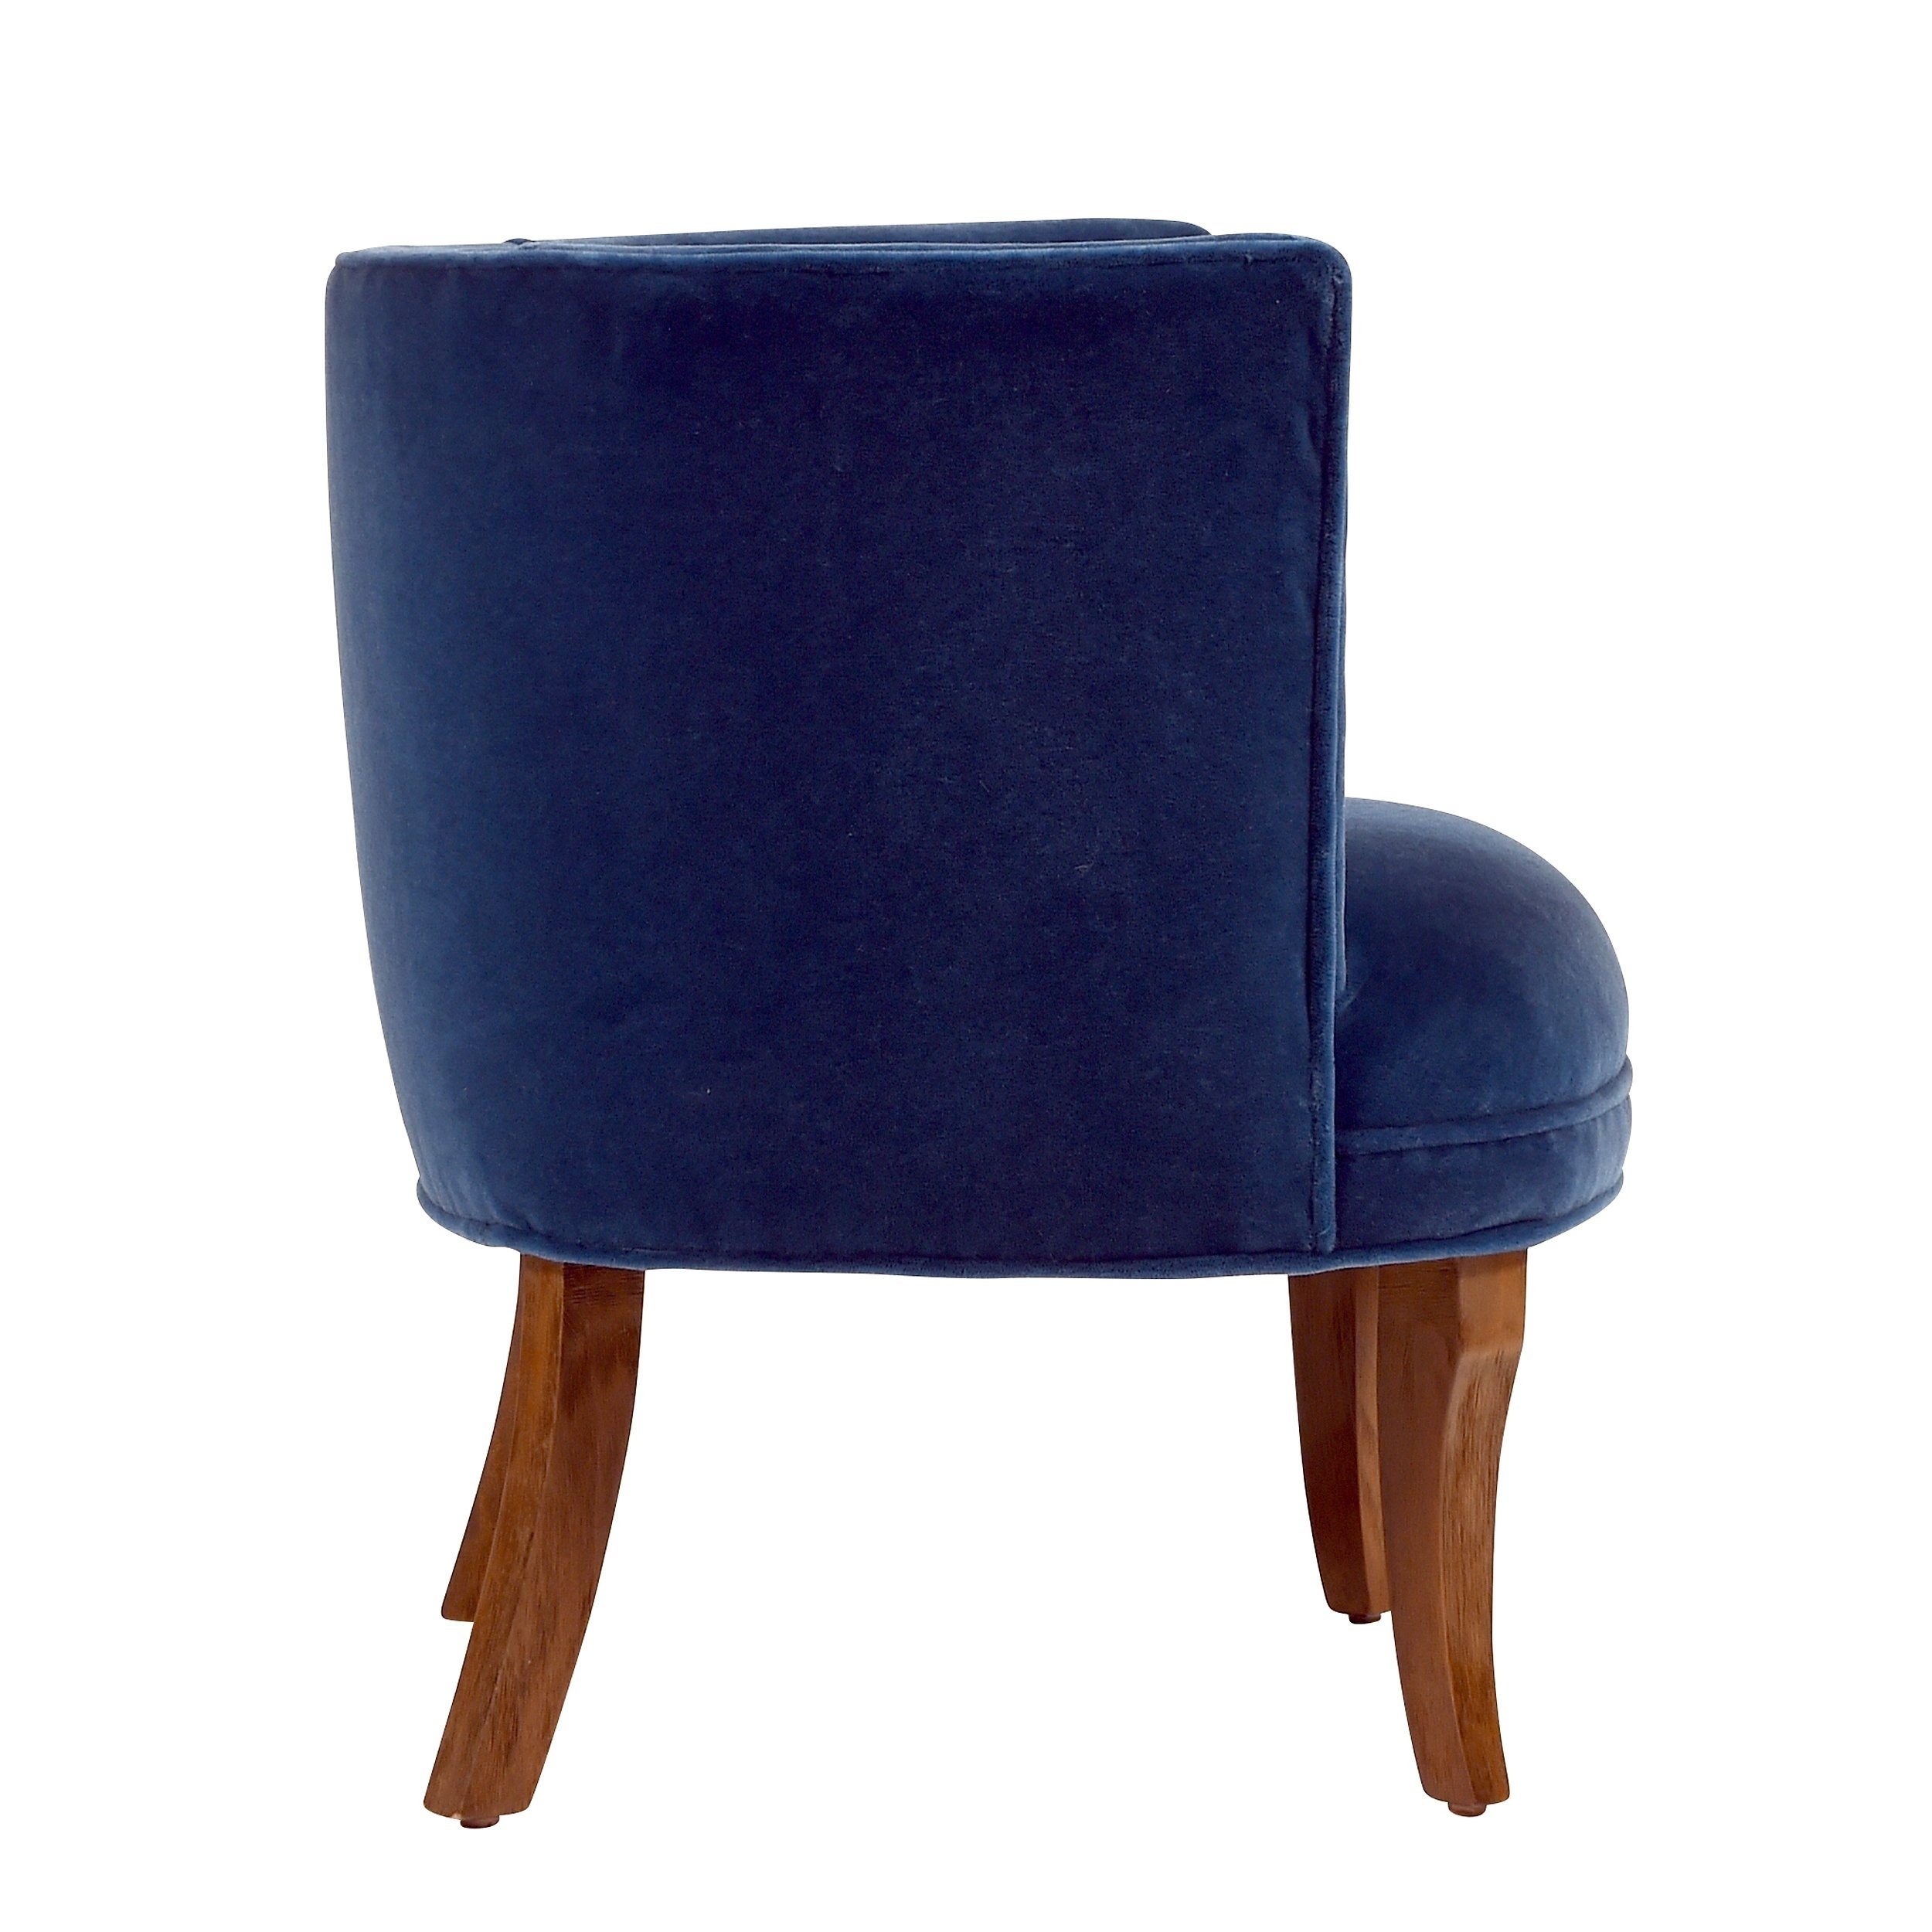 Jaxon Grey Upholstered Side Chairs Within Most Recently Released Shop Jaxon Bella Navy Blue Velvet Upholstered Armchair – Free (#9 of 20)